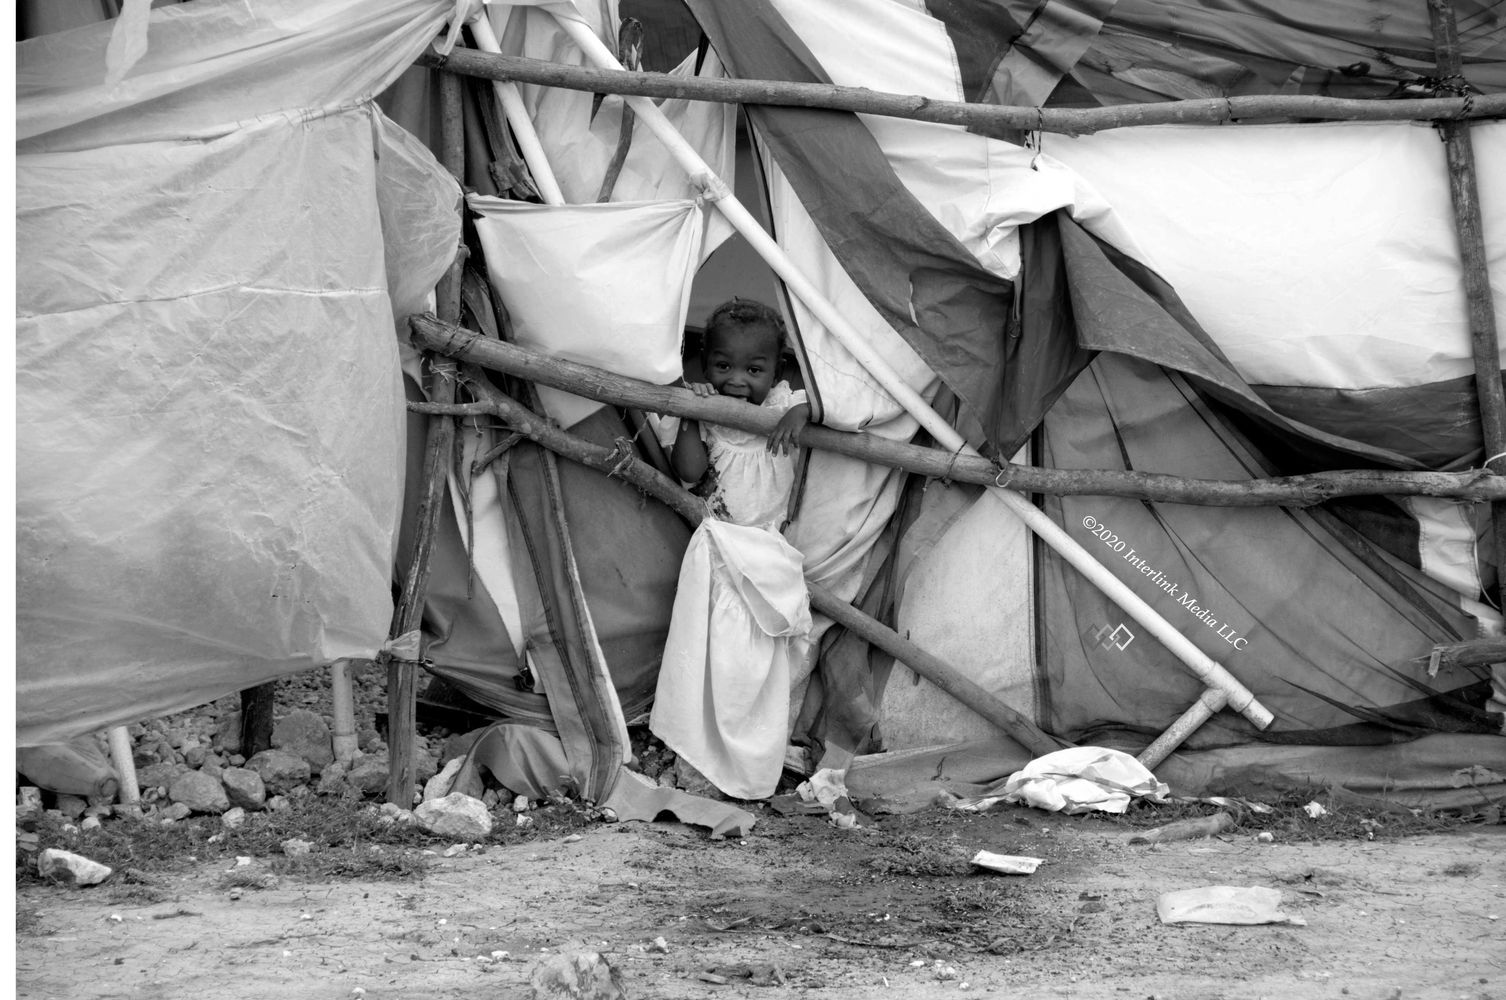 A small girl in a tent in Haiti immediately after the massive earthquake in 2010.